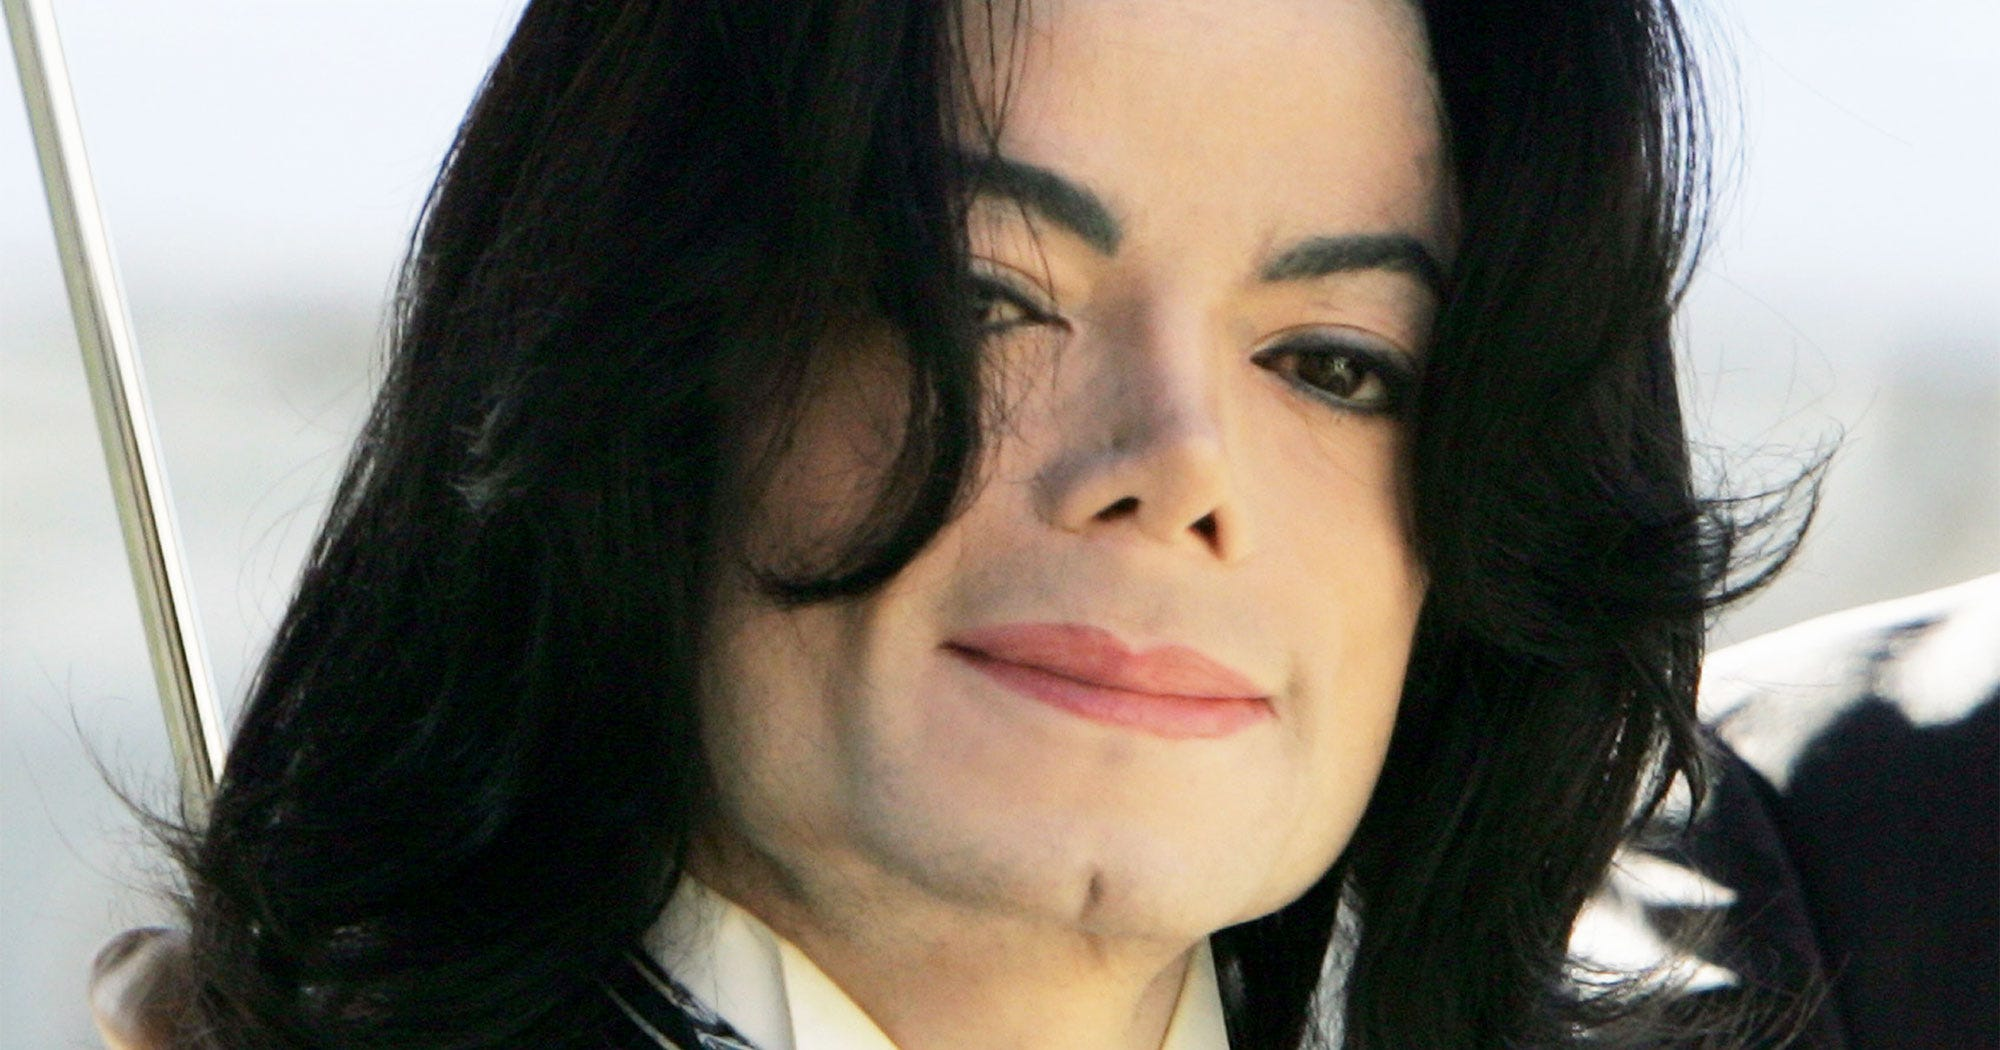 10 Years After Michael Jackson's Death, The King Of Pop's Legacy Is In Shambles